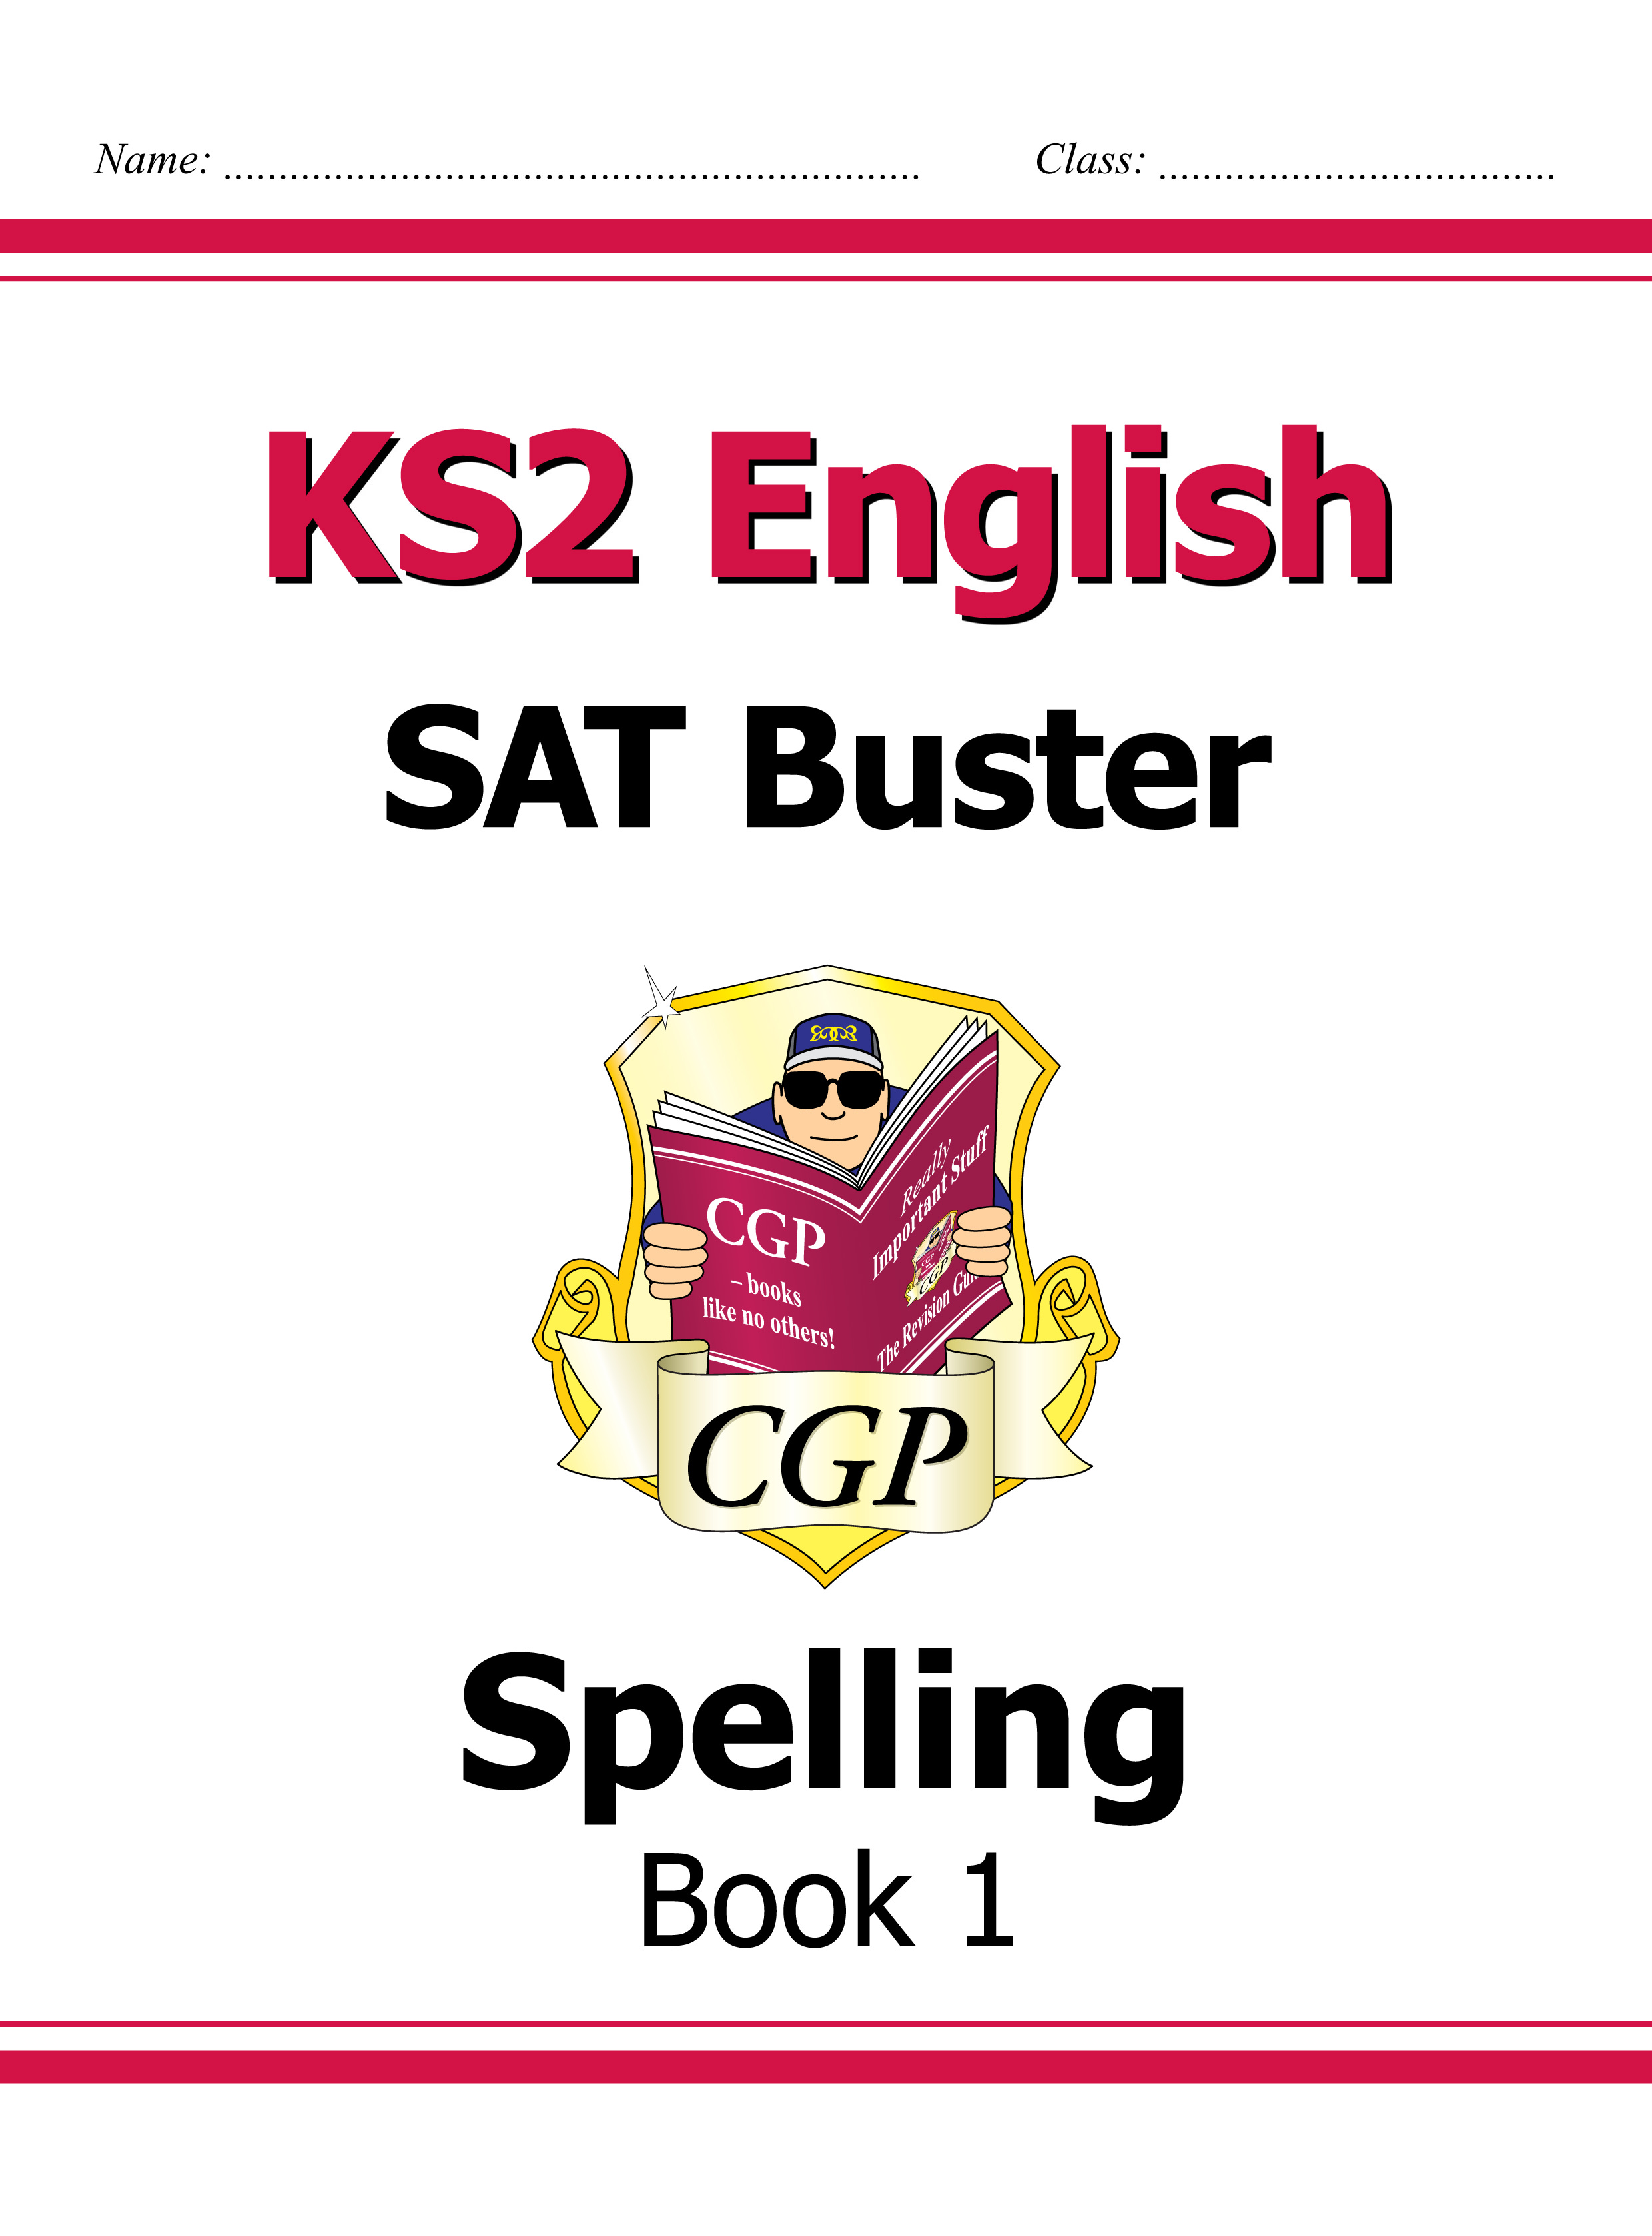 E6S23DK - KS2 English SAT Buster: Spelling Book 1 (for tests in 2018 and beyond)